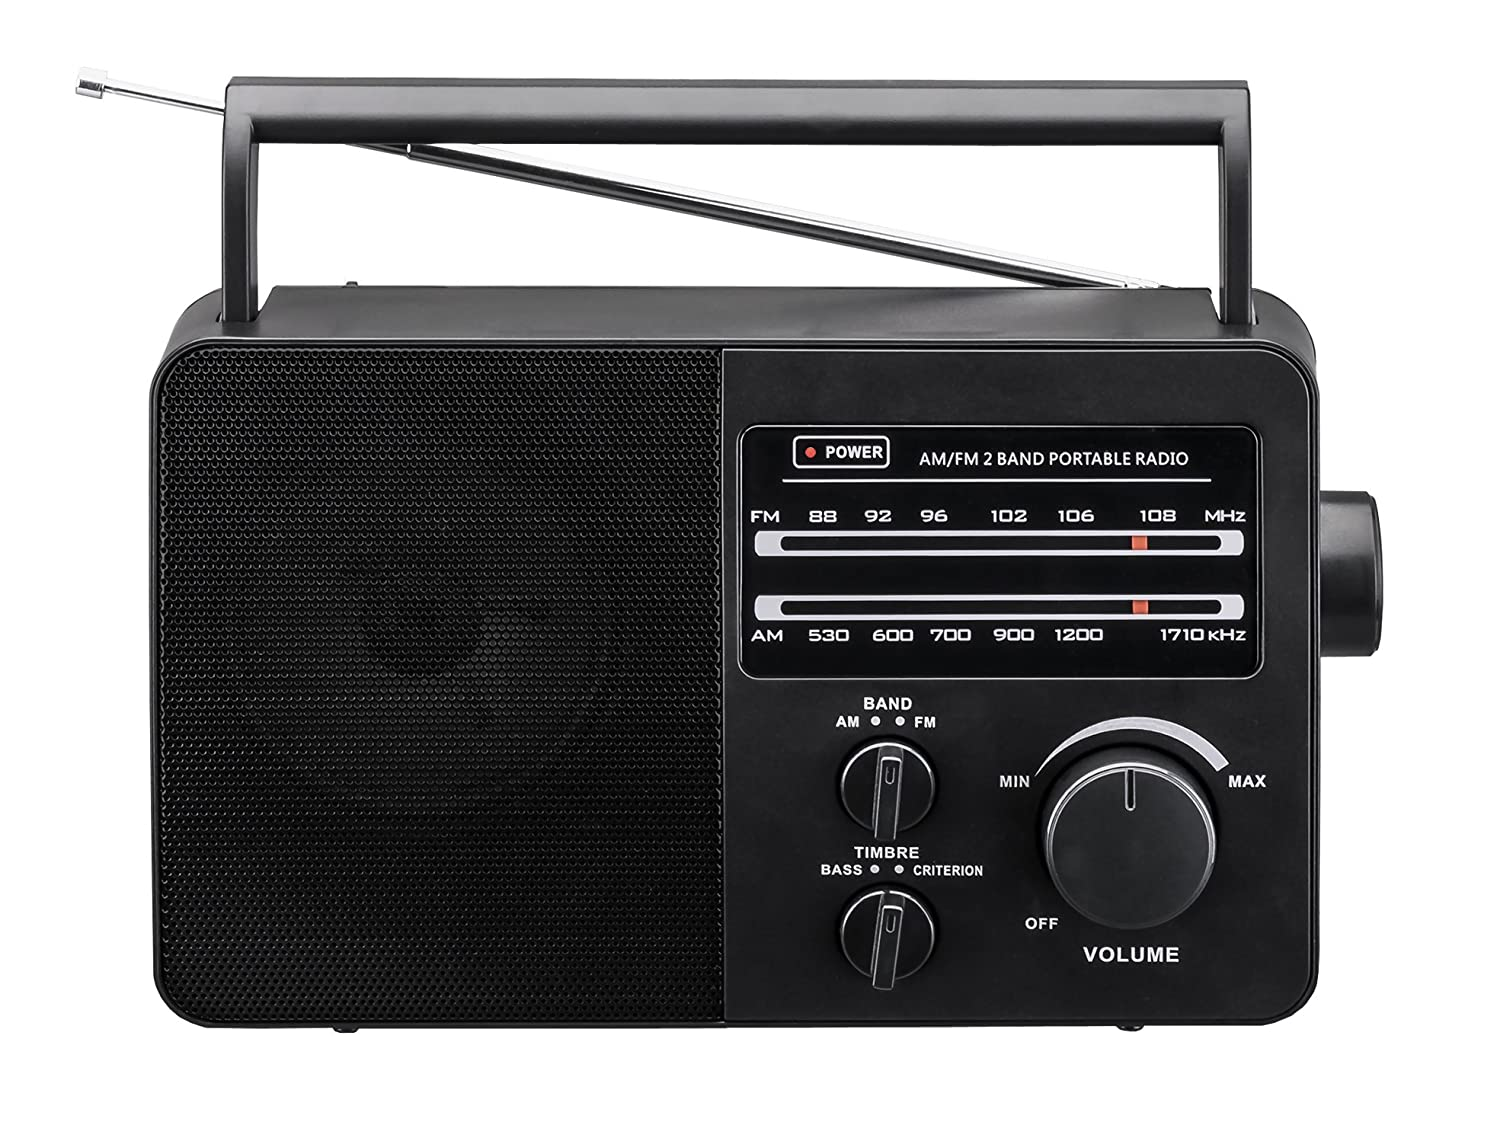 JP-1 AM//FM 2 Band Portable Radio AC operated or operated by dry battery black D Size x 4pcs, battery not included